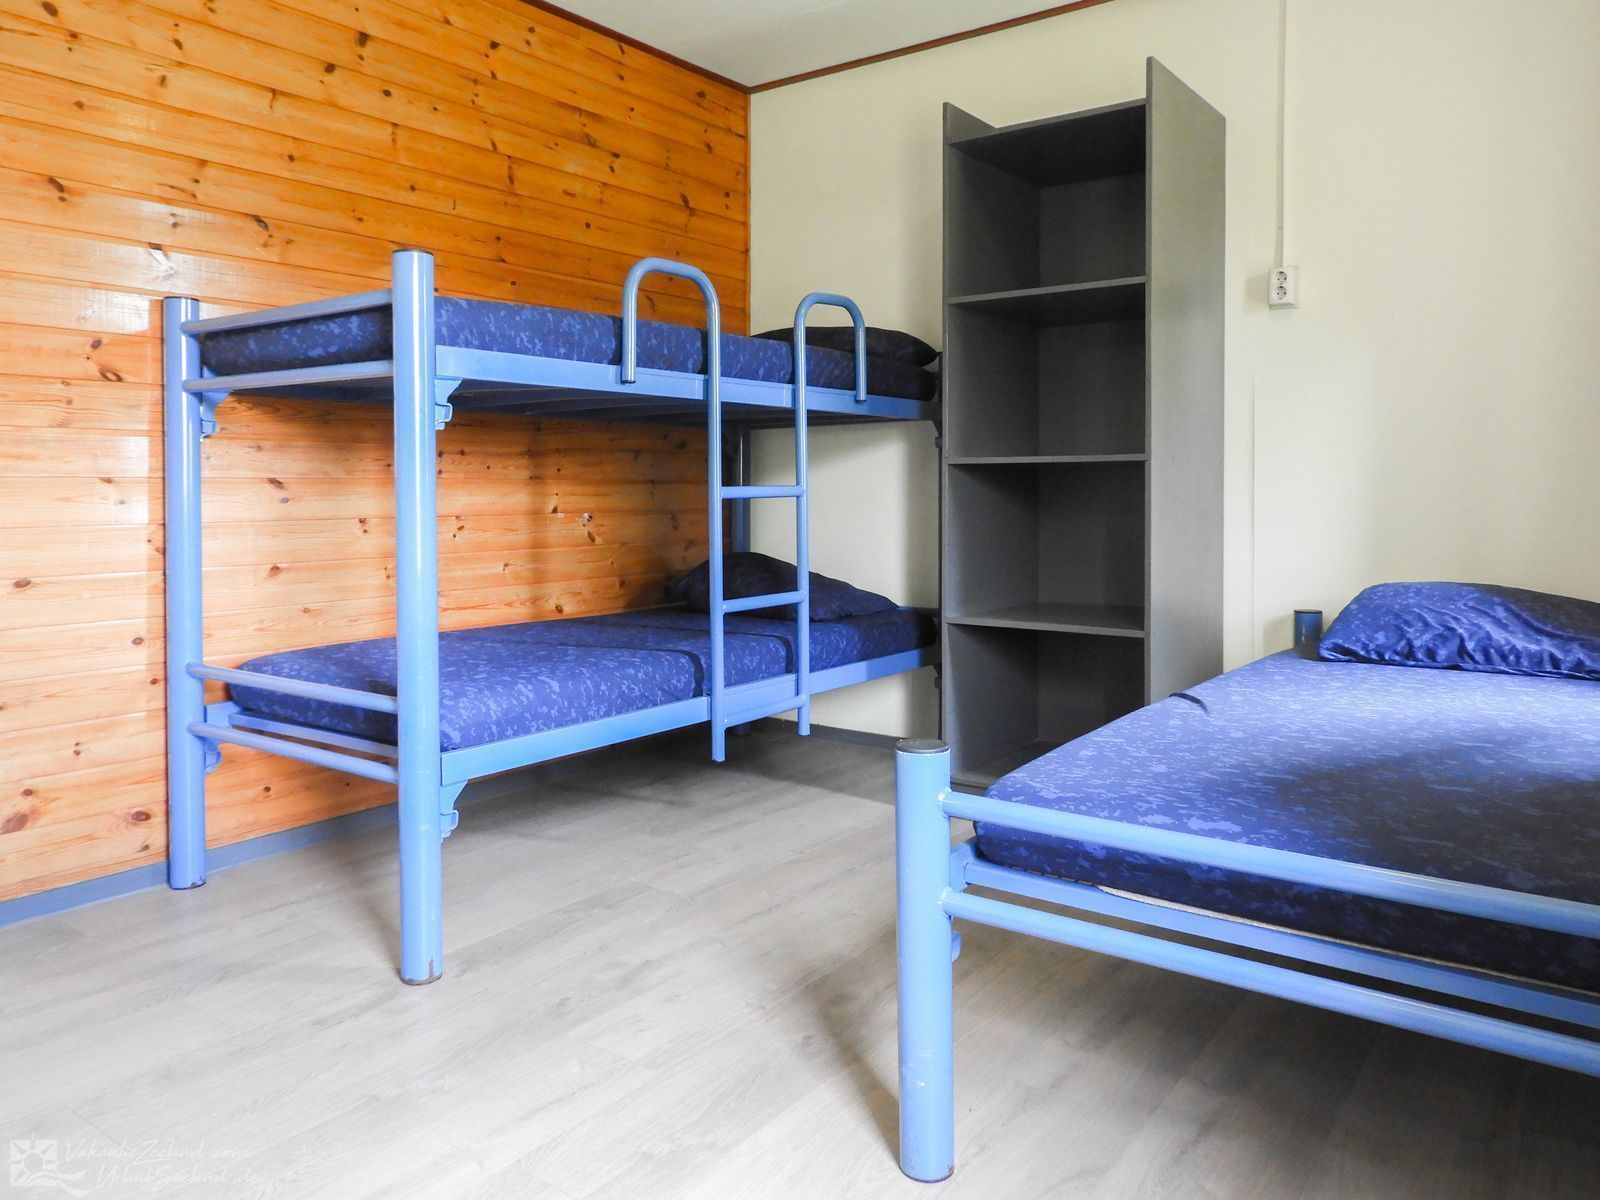 VZ276 Group accommodation Ellemeet